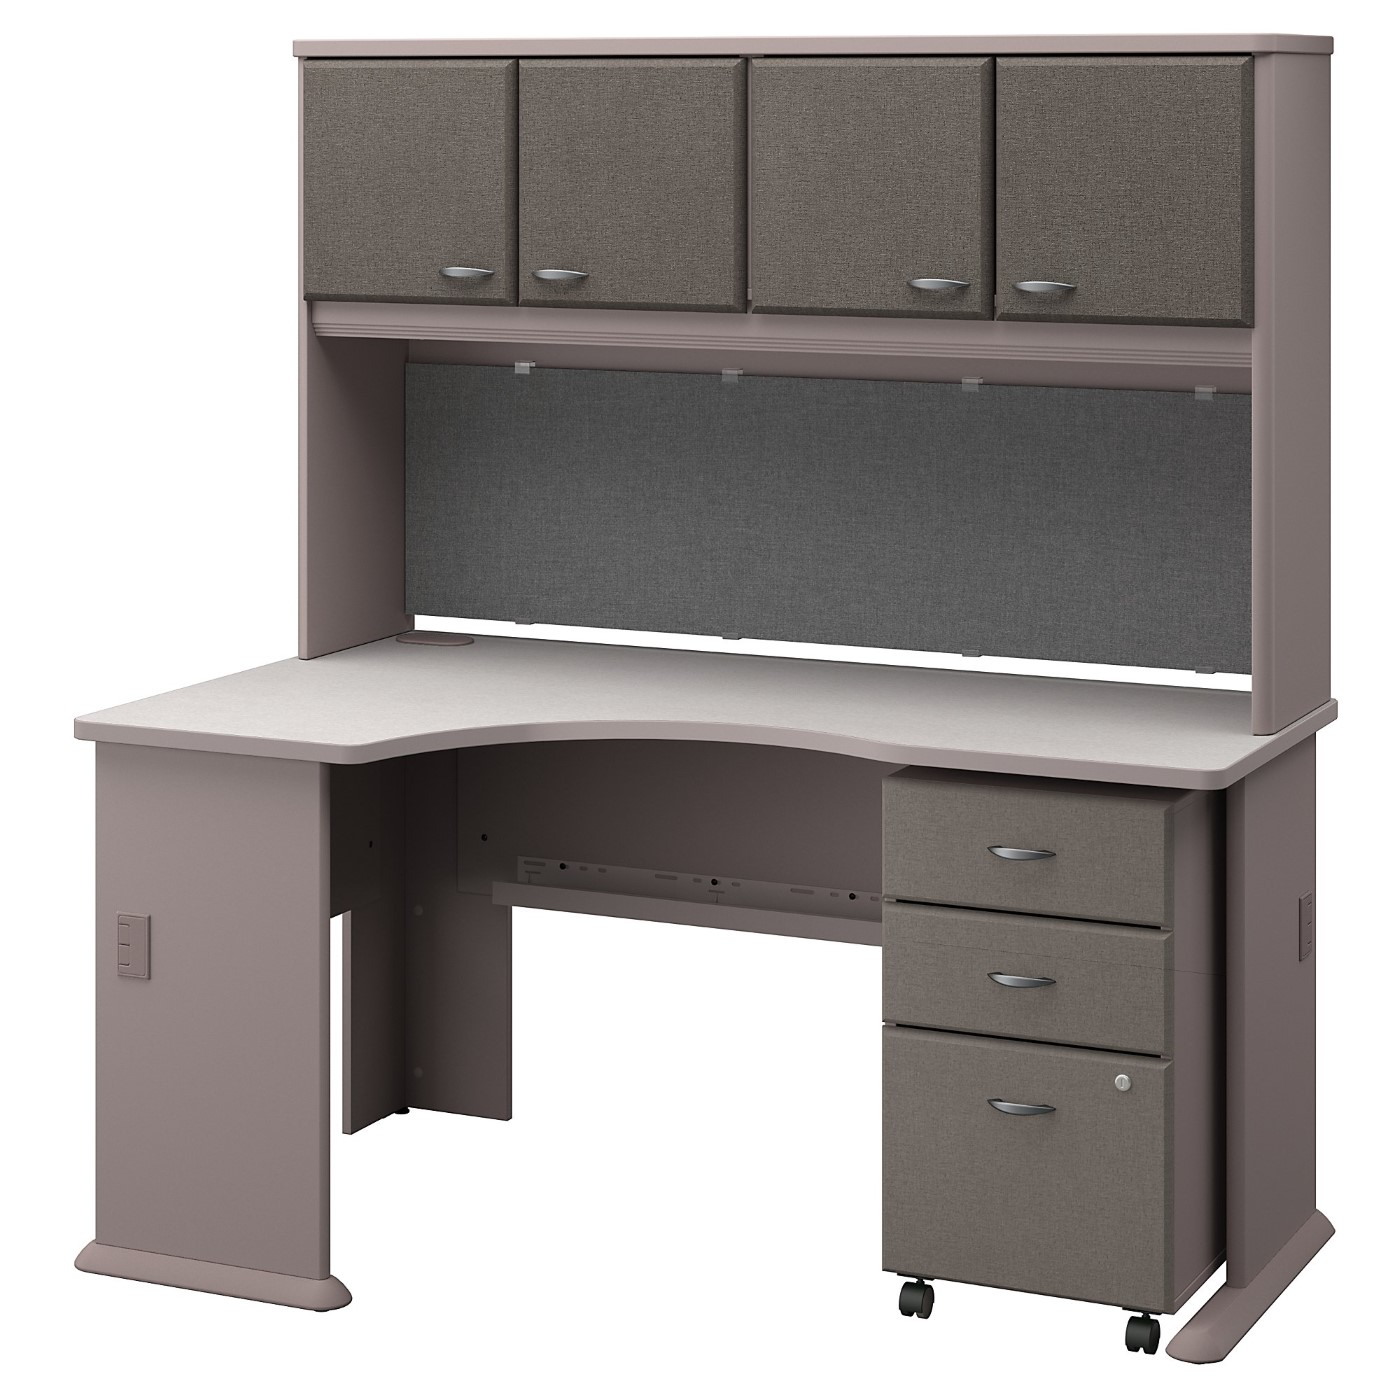 BUSH BUSINESS FURNITURE SERIES A LEFT CORNER DESK WITH HUTCH AND MOBILE FILE CABINET. FREE SHIPPING SALE DEDUCT 10% MORE ENTER '10percent' IN COUPON CODE BOX WHILE CHECKING OUT.